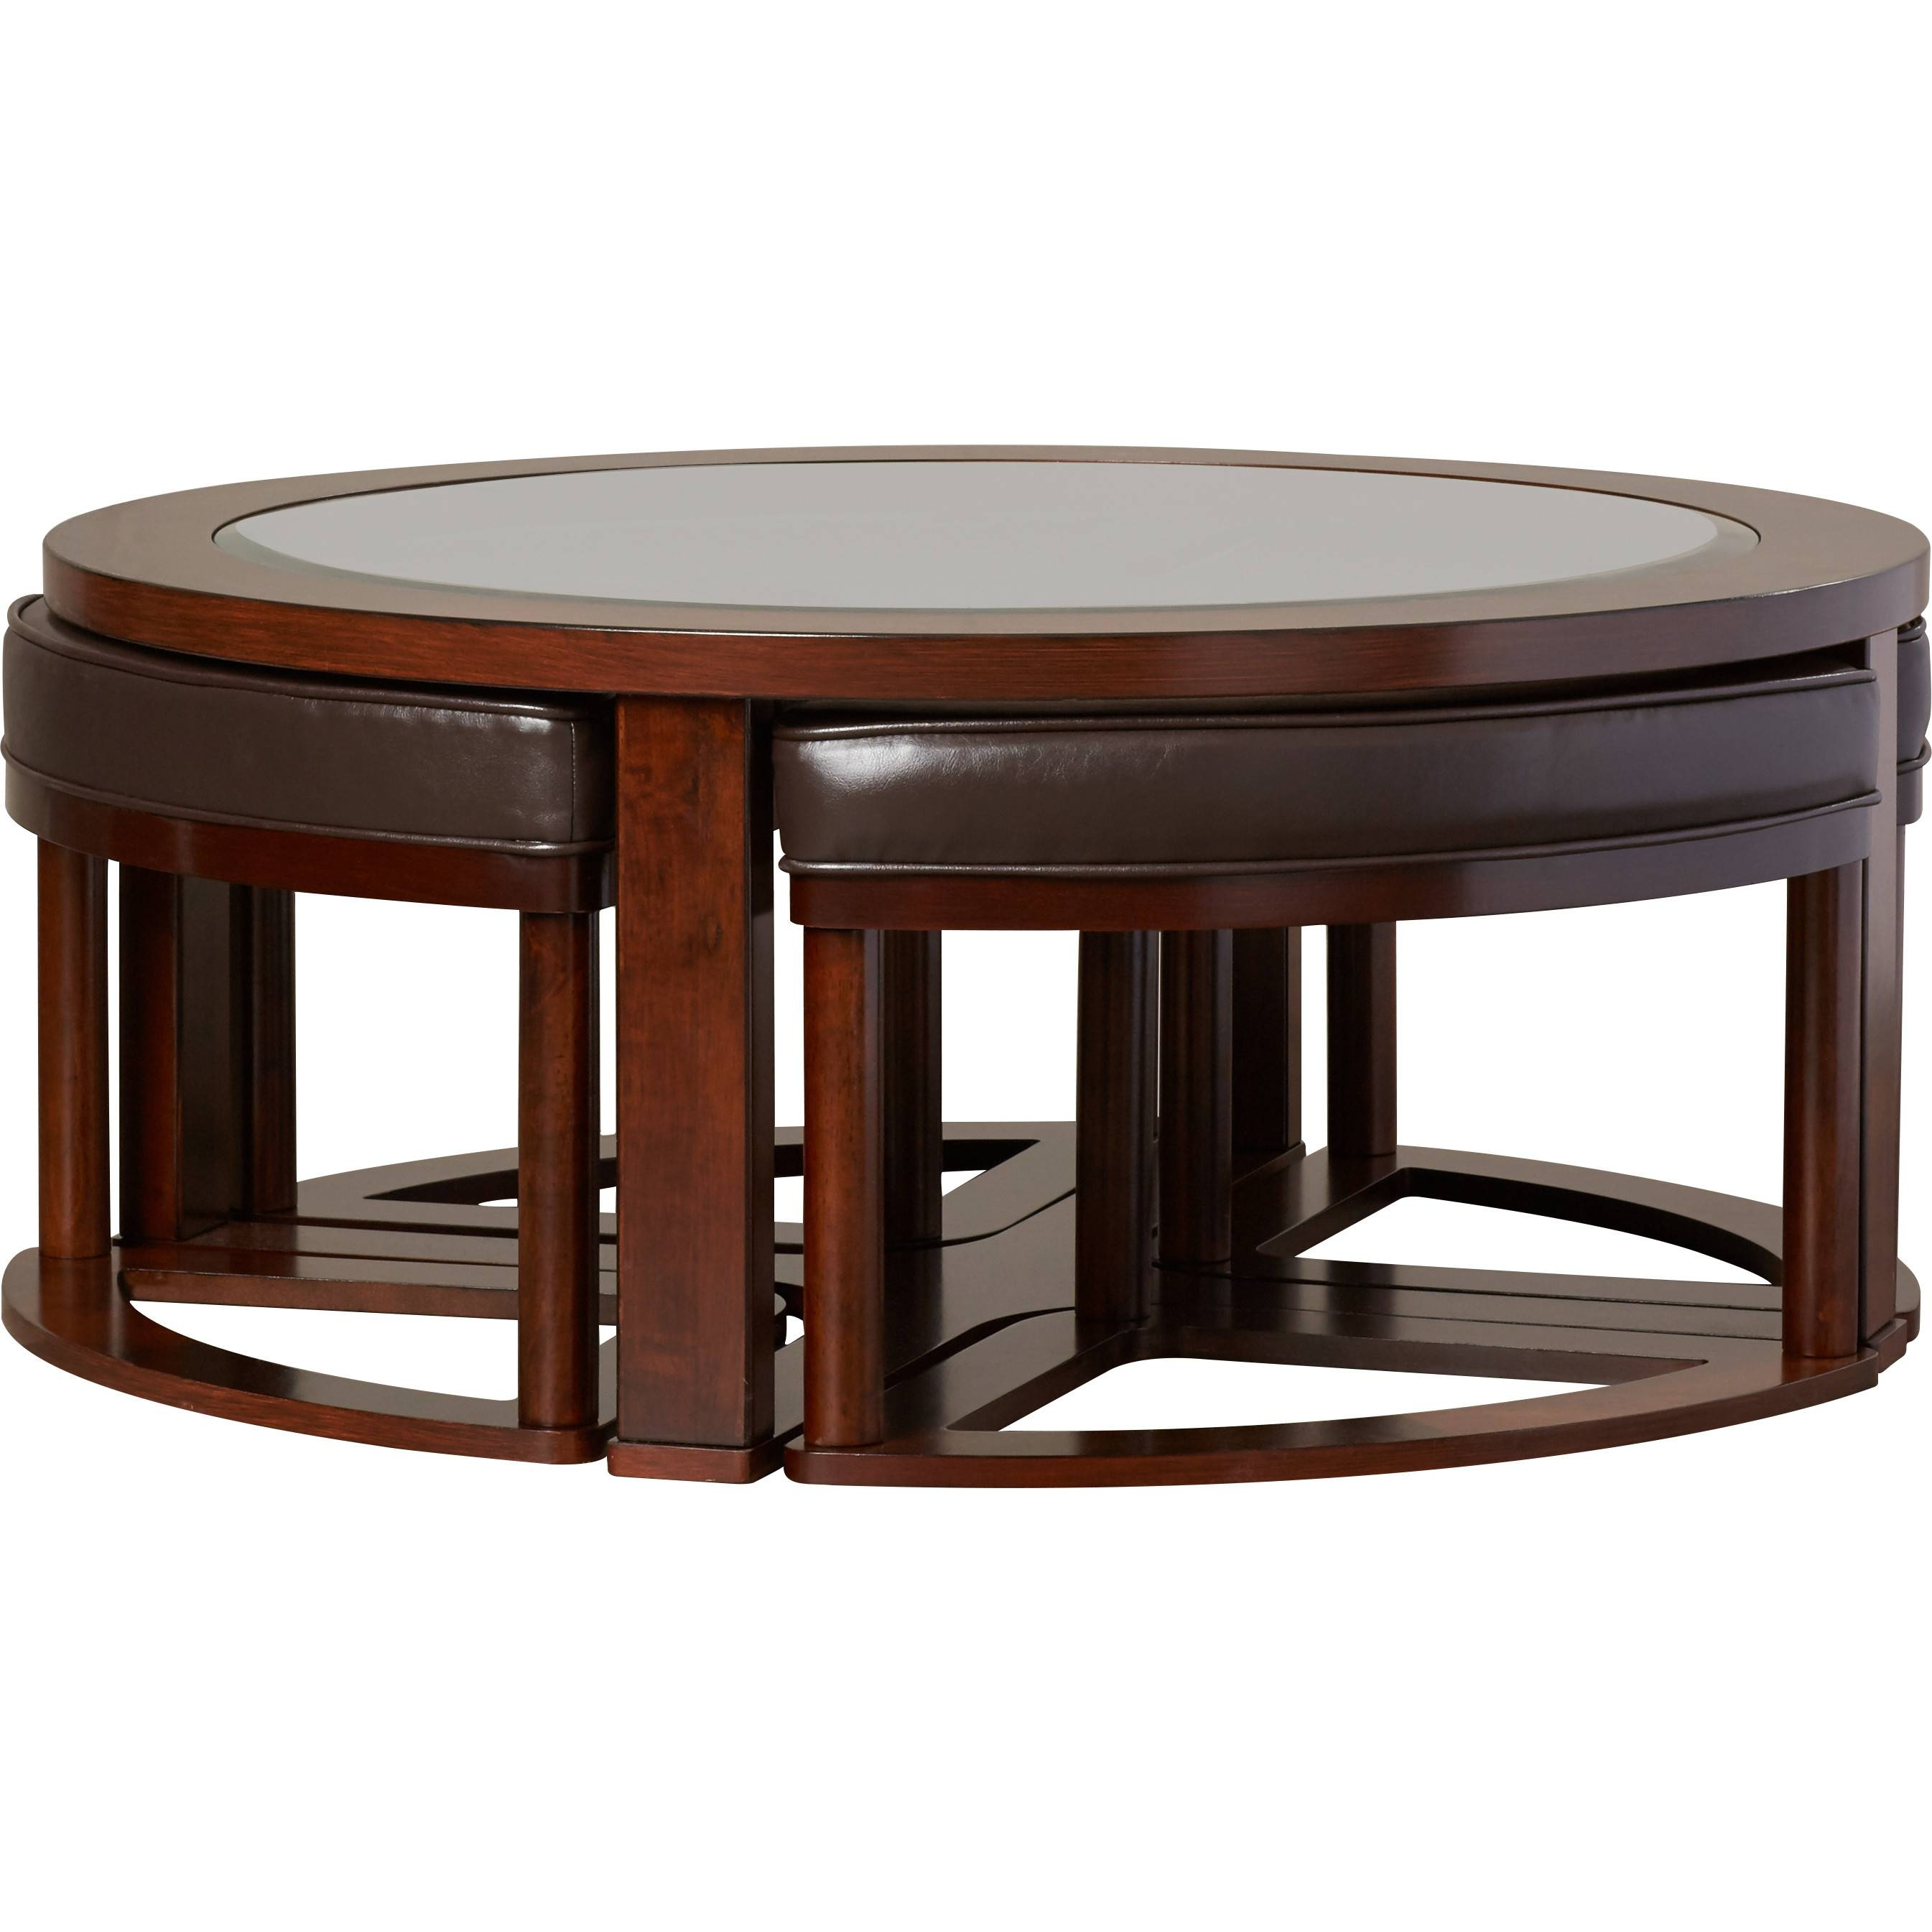 Furniture: Coffee Table With Chairs Underneath Coffee Table With pertaining to Coffee Table With Chairs (Image 21 of 30)